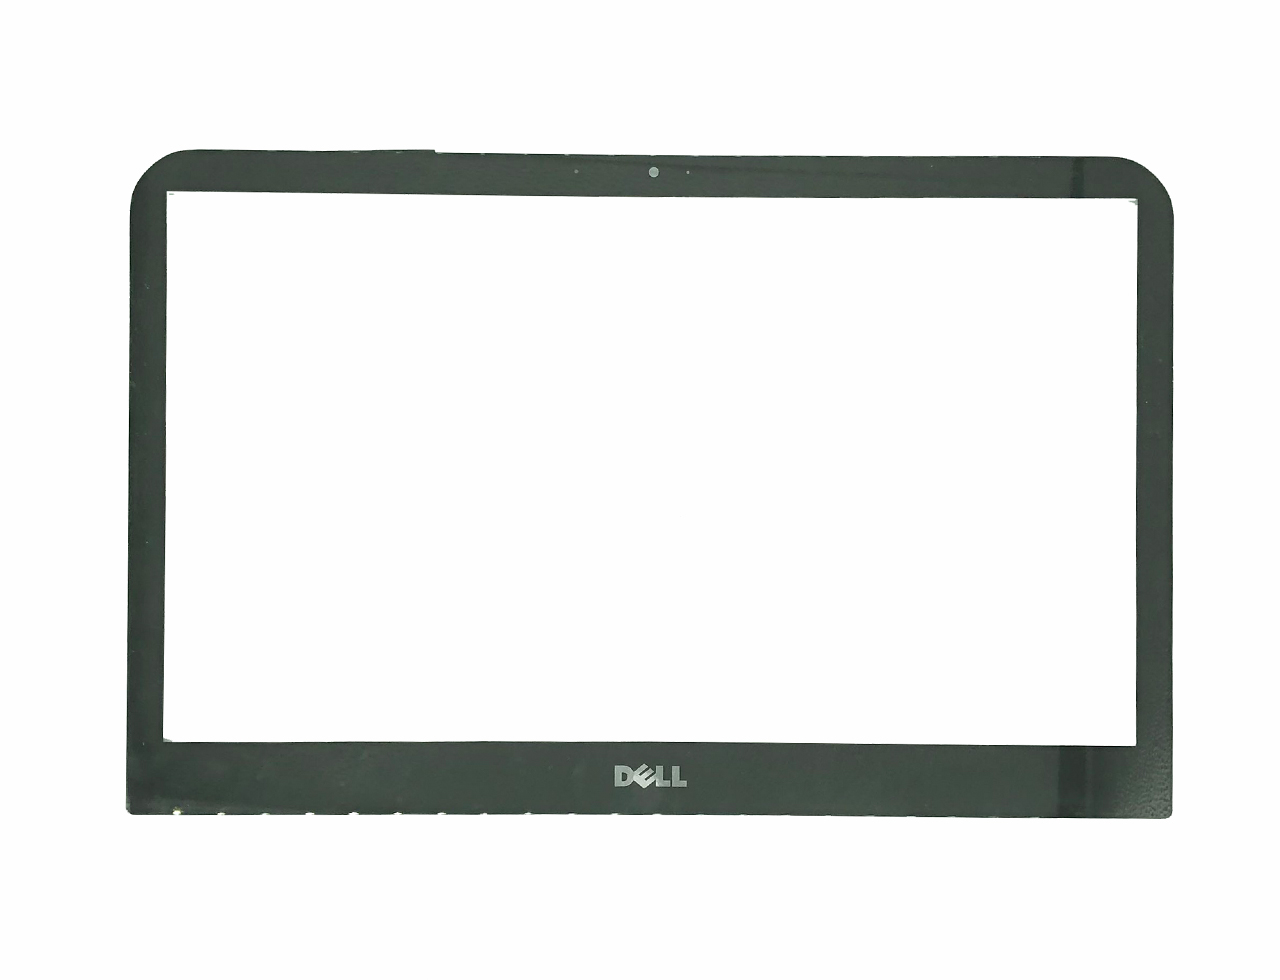 新到货112片 戴尔Dell Inspiron 14 (3421) 14R (5421) Touch Screen Digitizer Glass 触摸玻璃